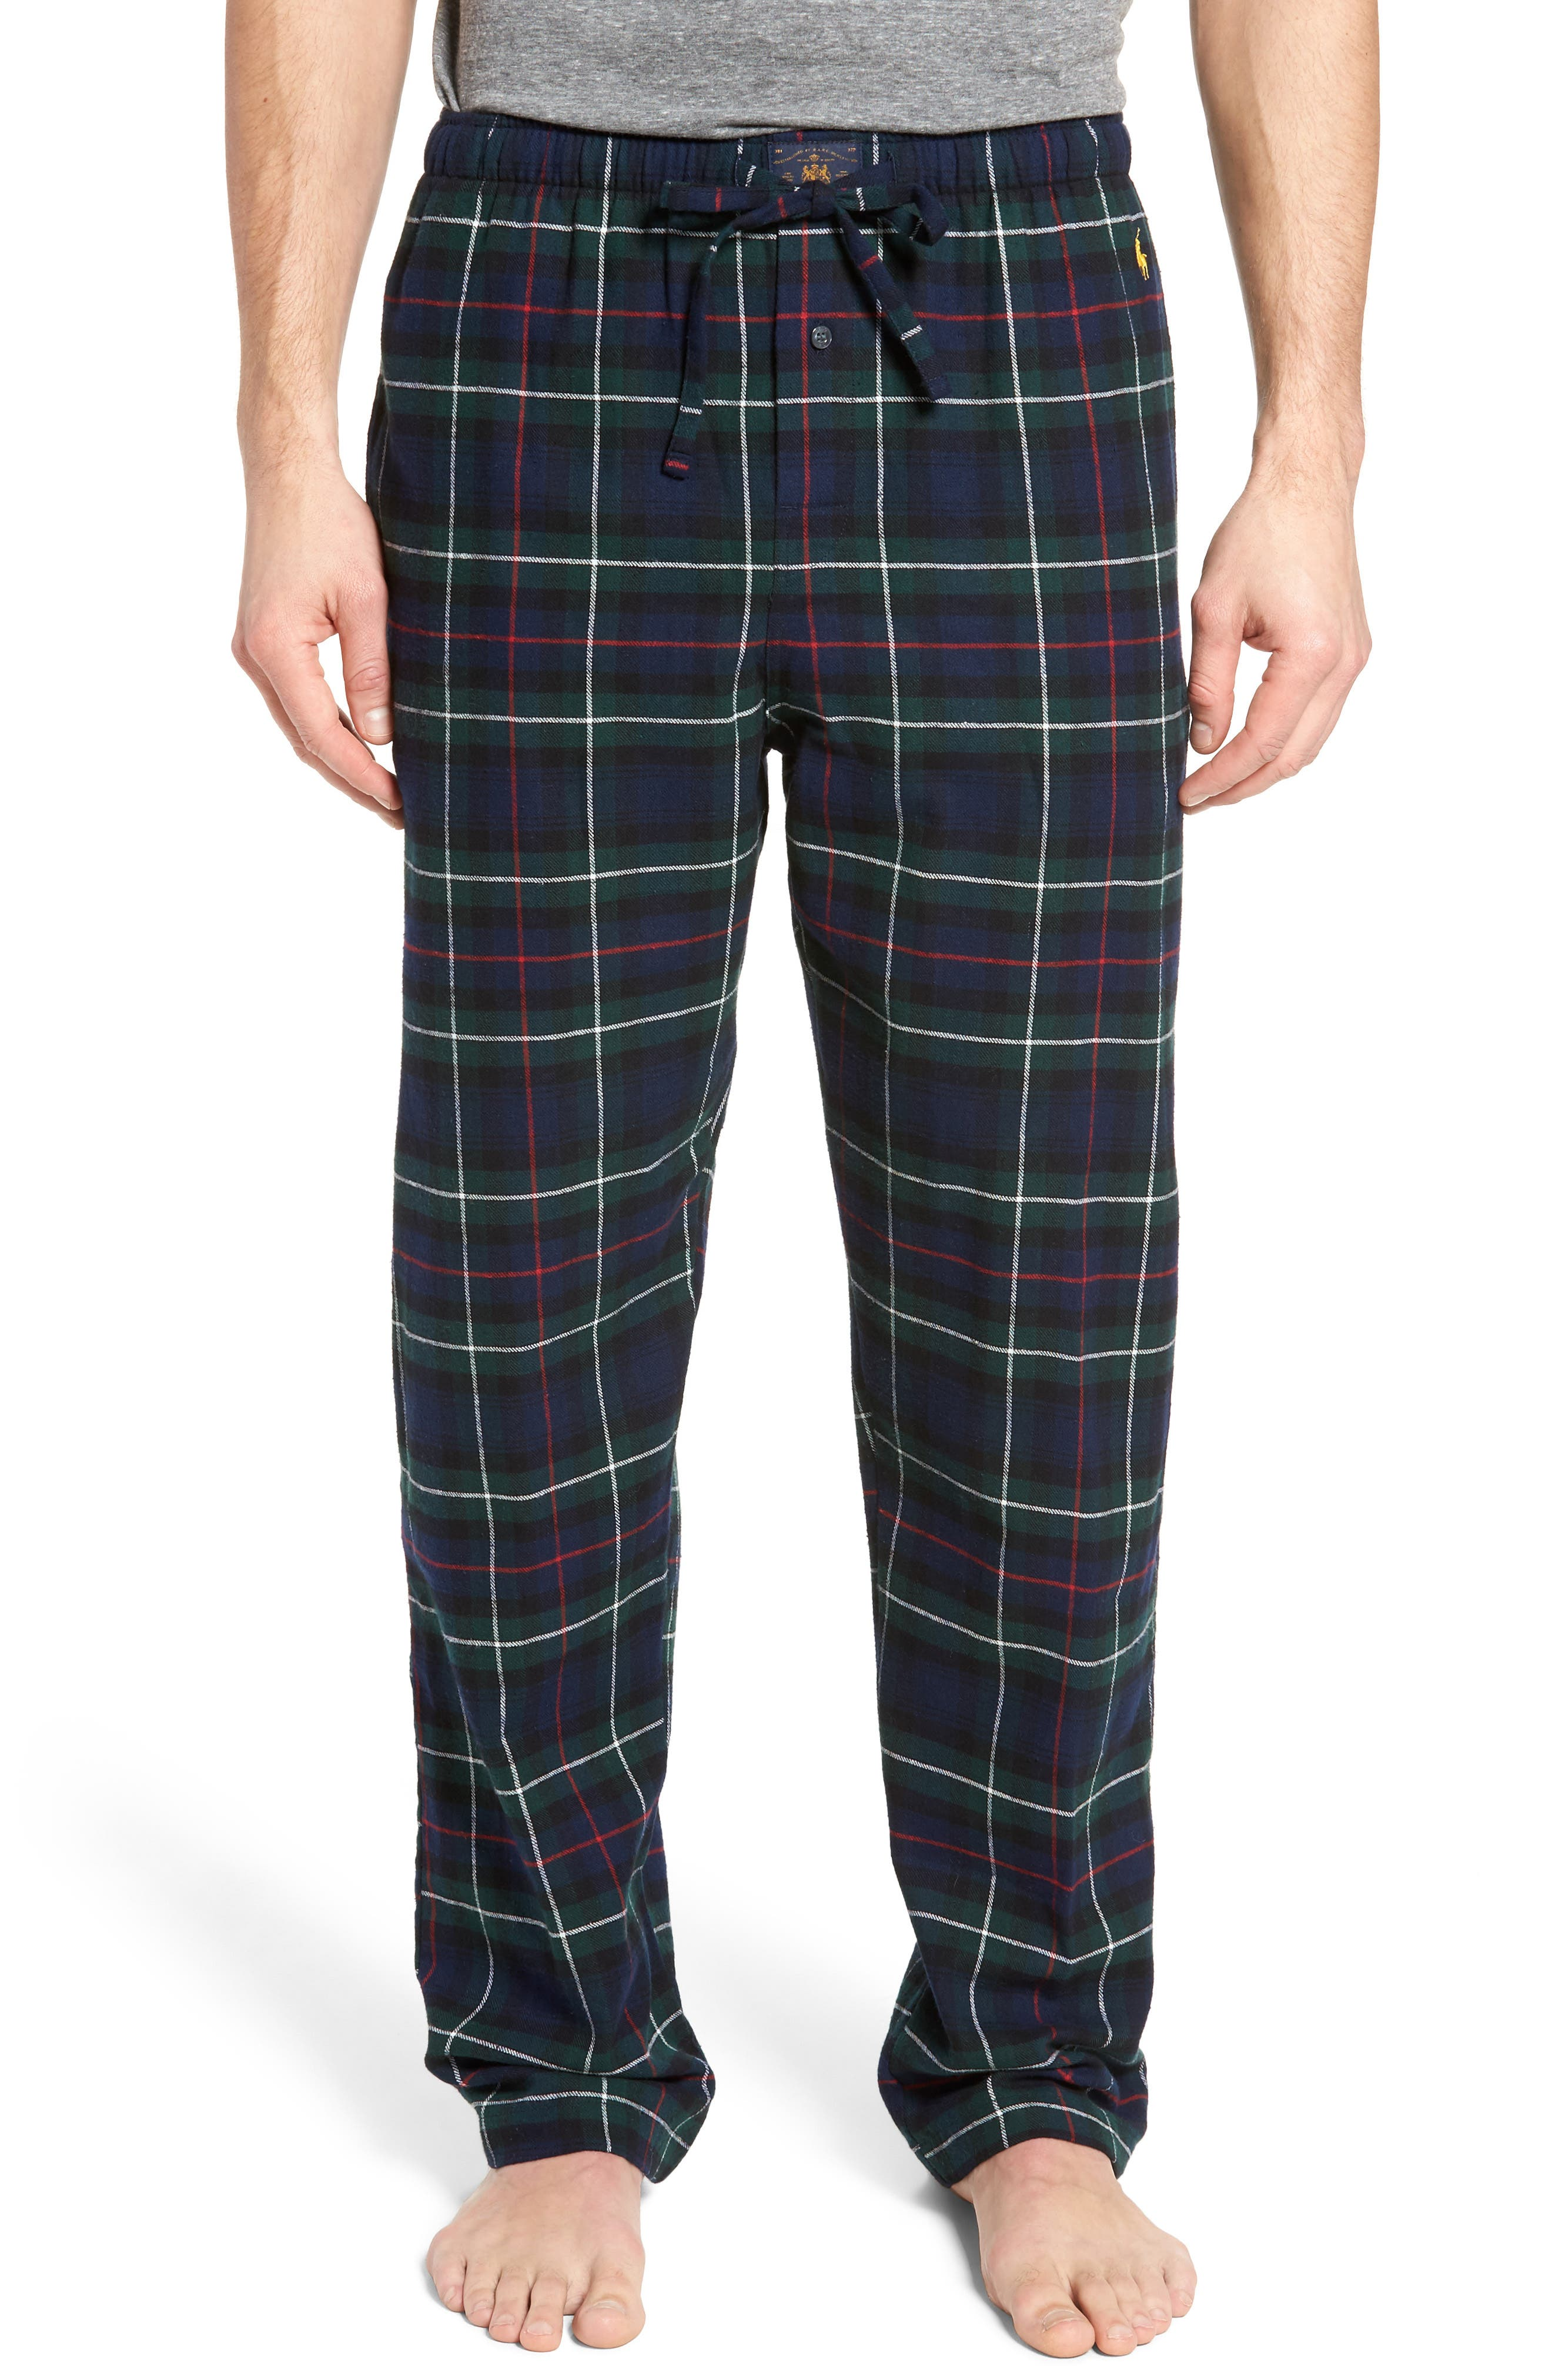 Flannel Pajama Pants,                         Main,                         color, Blackwatch/ Cruise Navy/ Gold